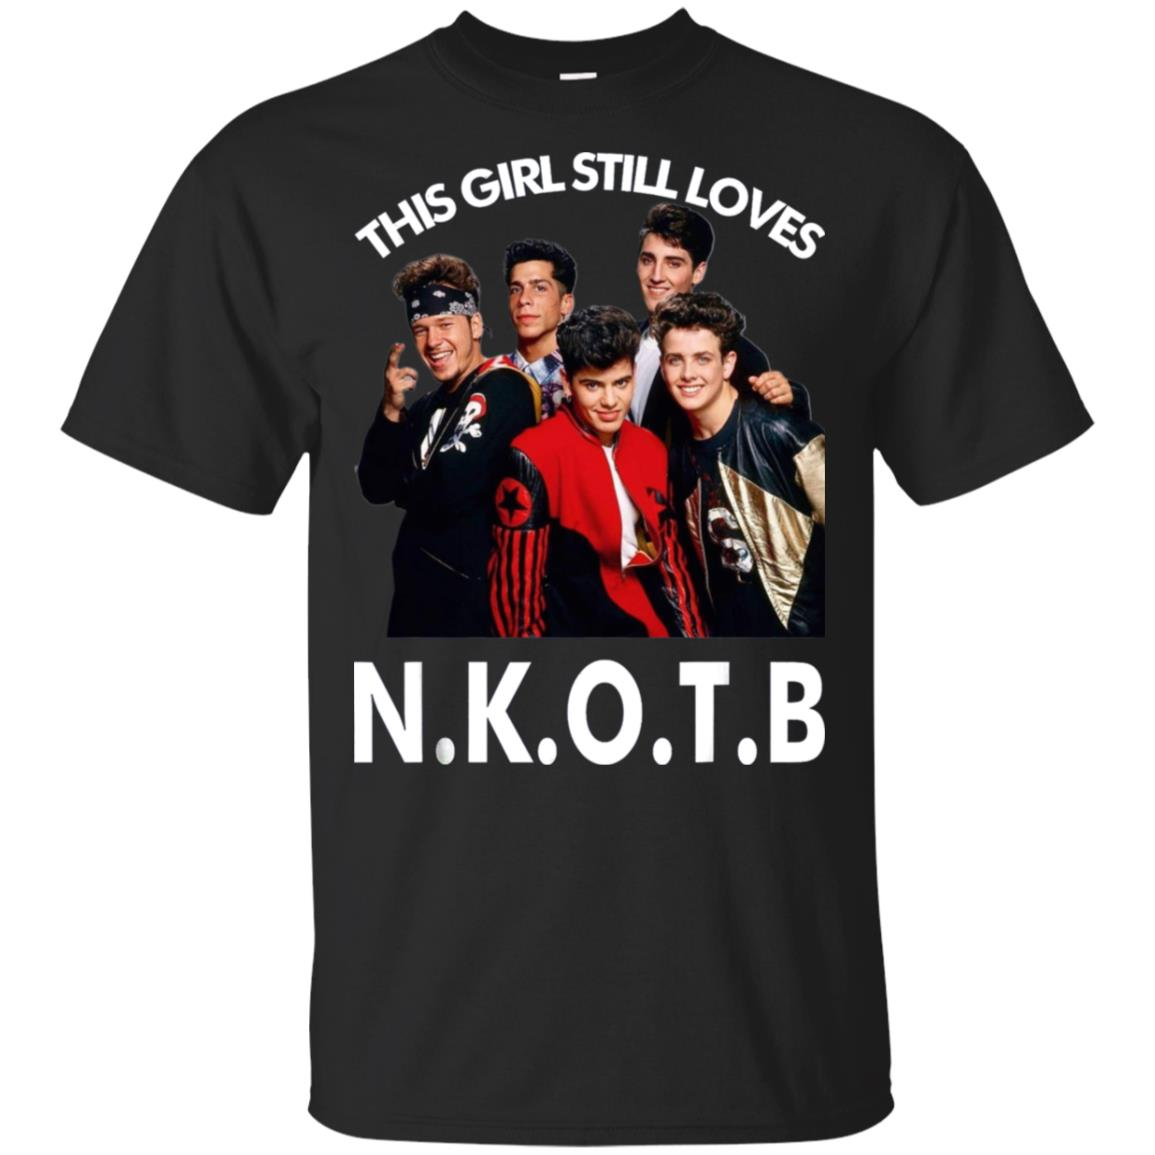 This girl still loves NKOTB